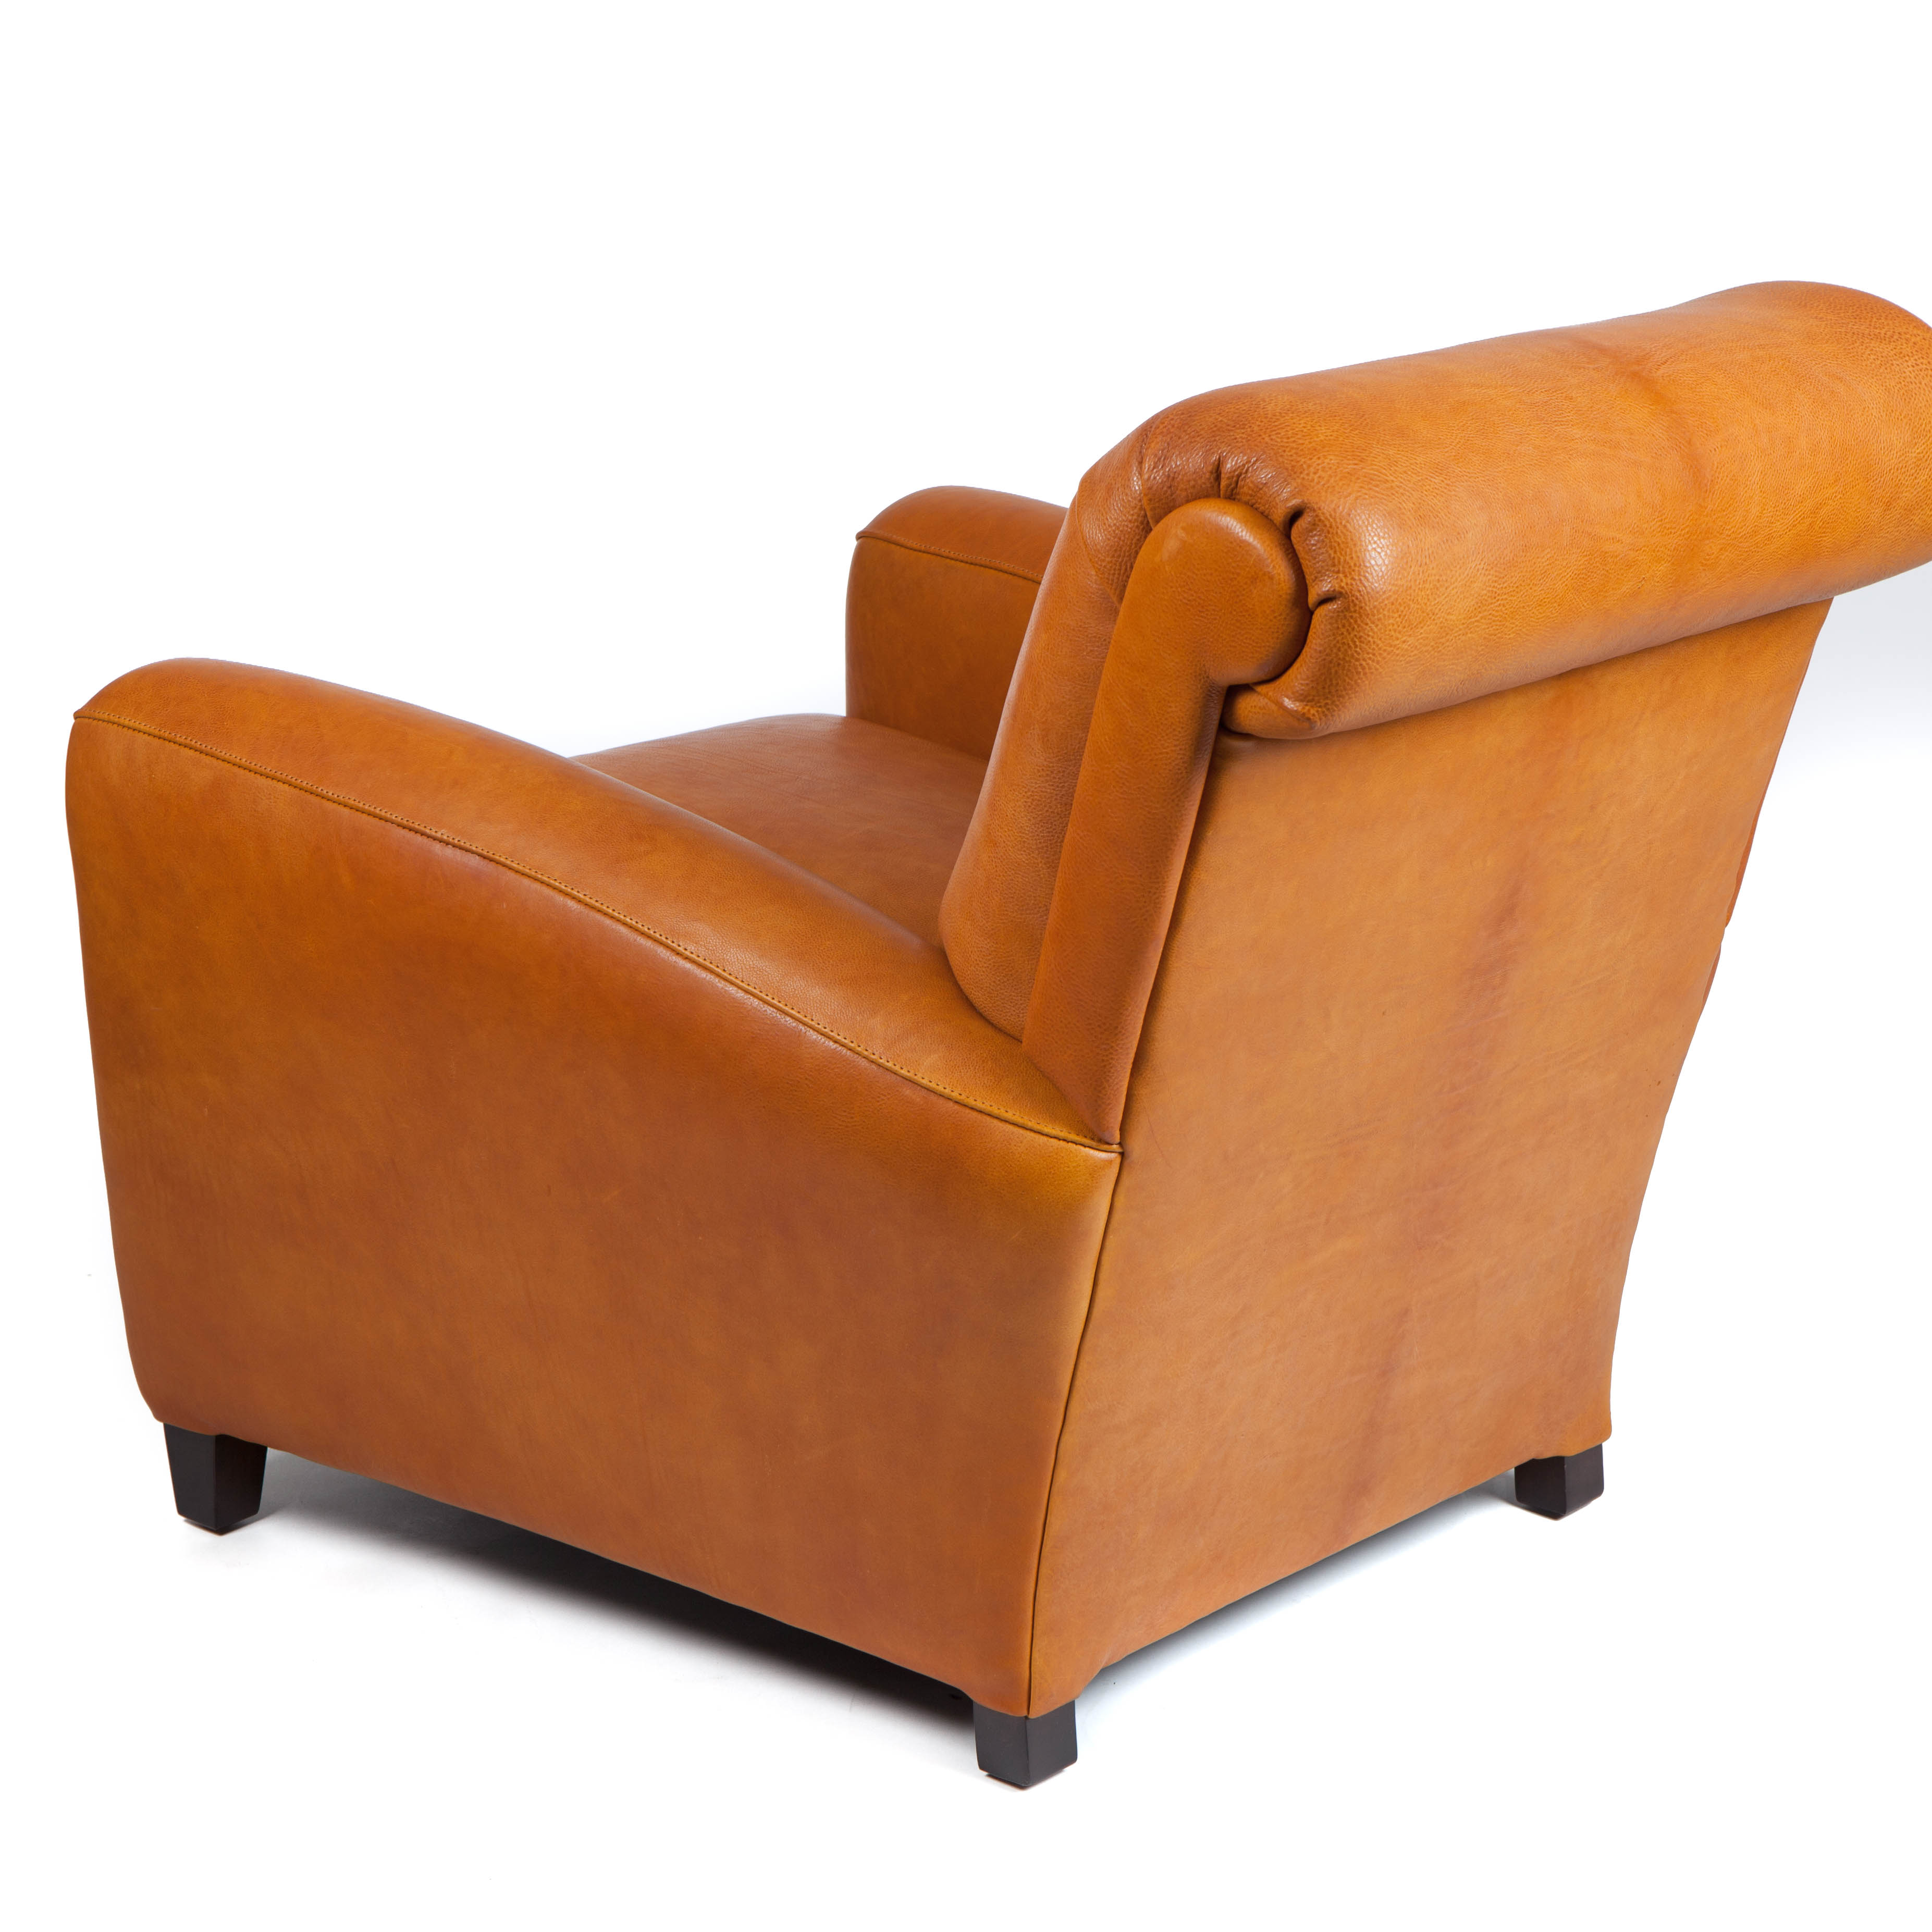 Moore & Giles Traynham Club Chair Leather No 7 in Modern Saddle